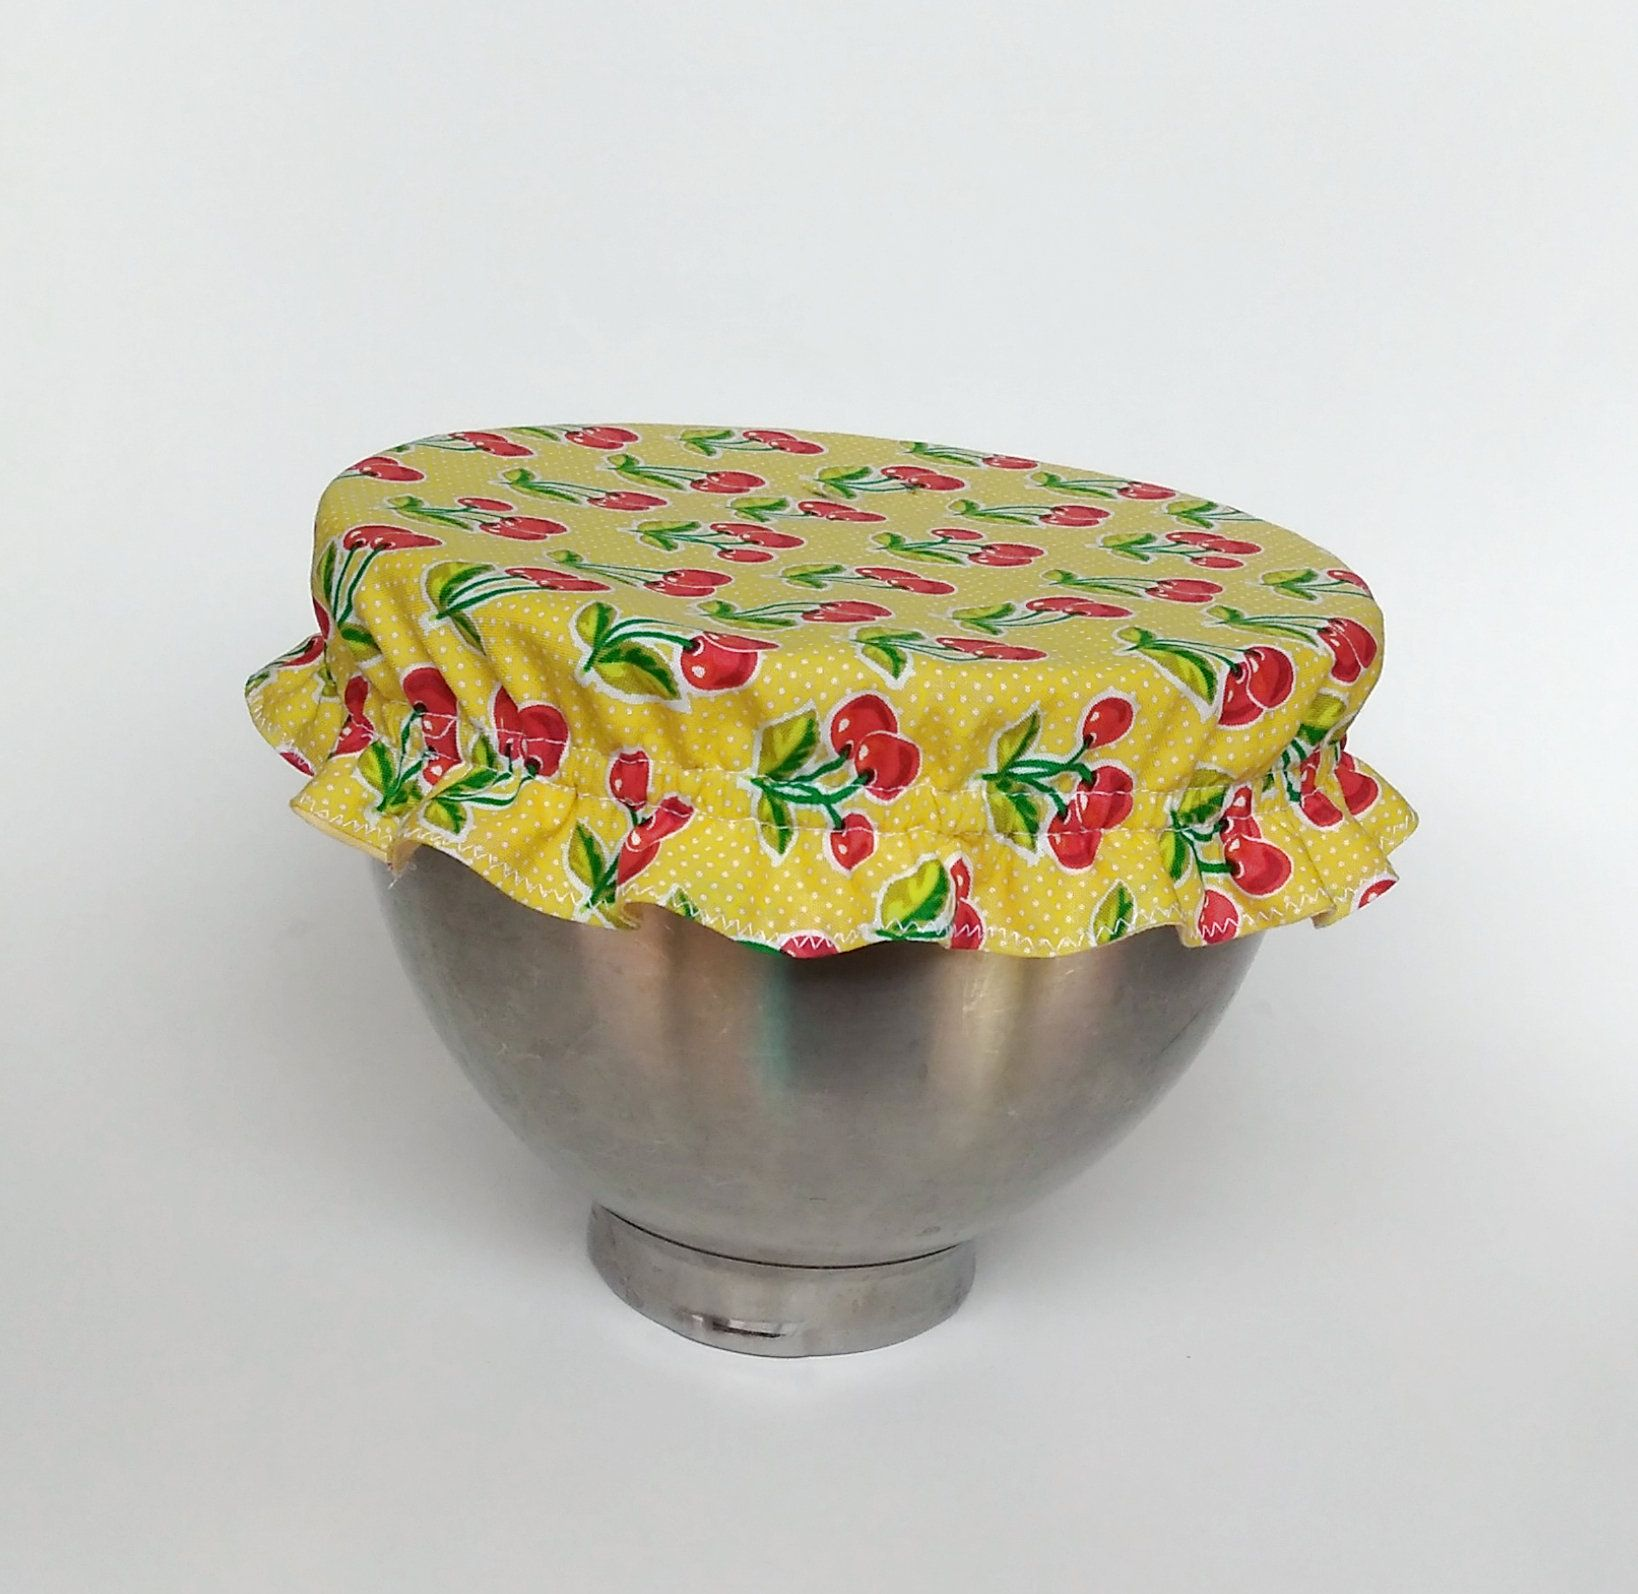 Bowl covers reusable stand mixer bowl cover cherry etsy